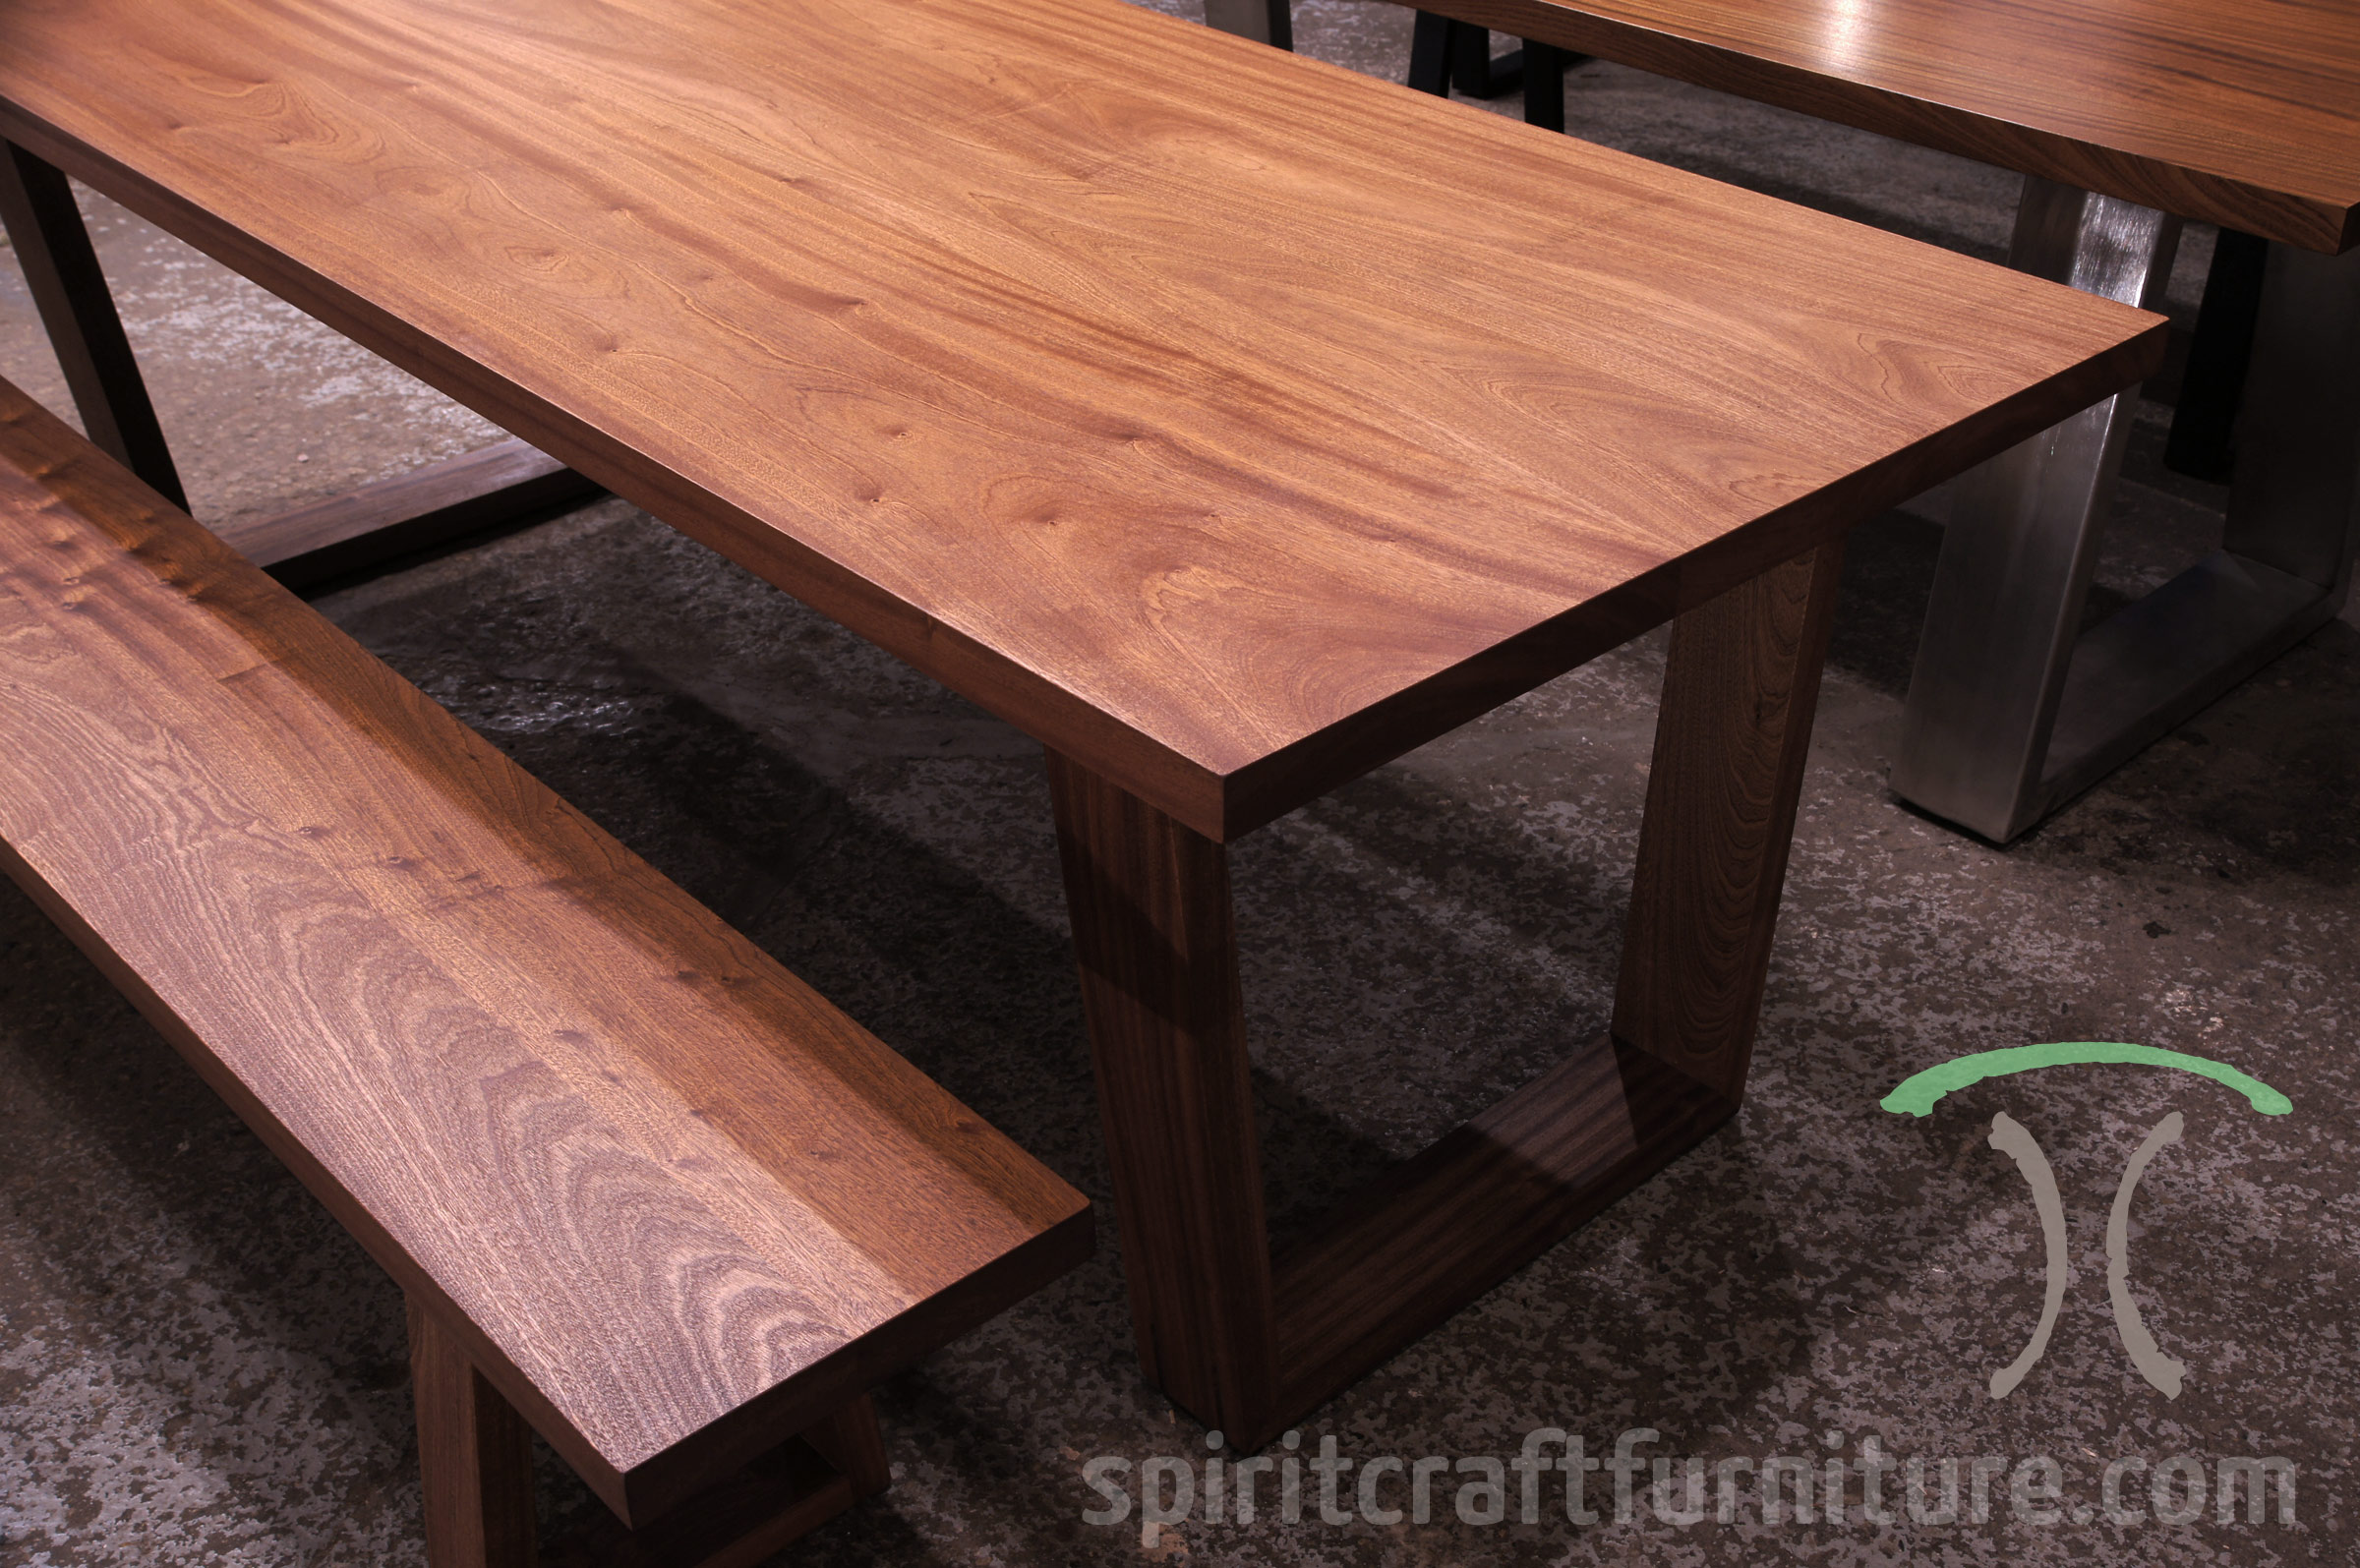 Slab dining or conference table in Sapele Mahogany with matching thick slab or plank bench on solid hardwood trapezoid mid century modern style legs available at Spiritcraft Furniture, Dundee, IL